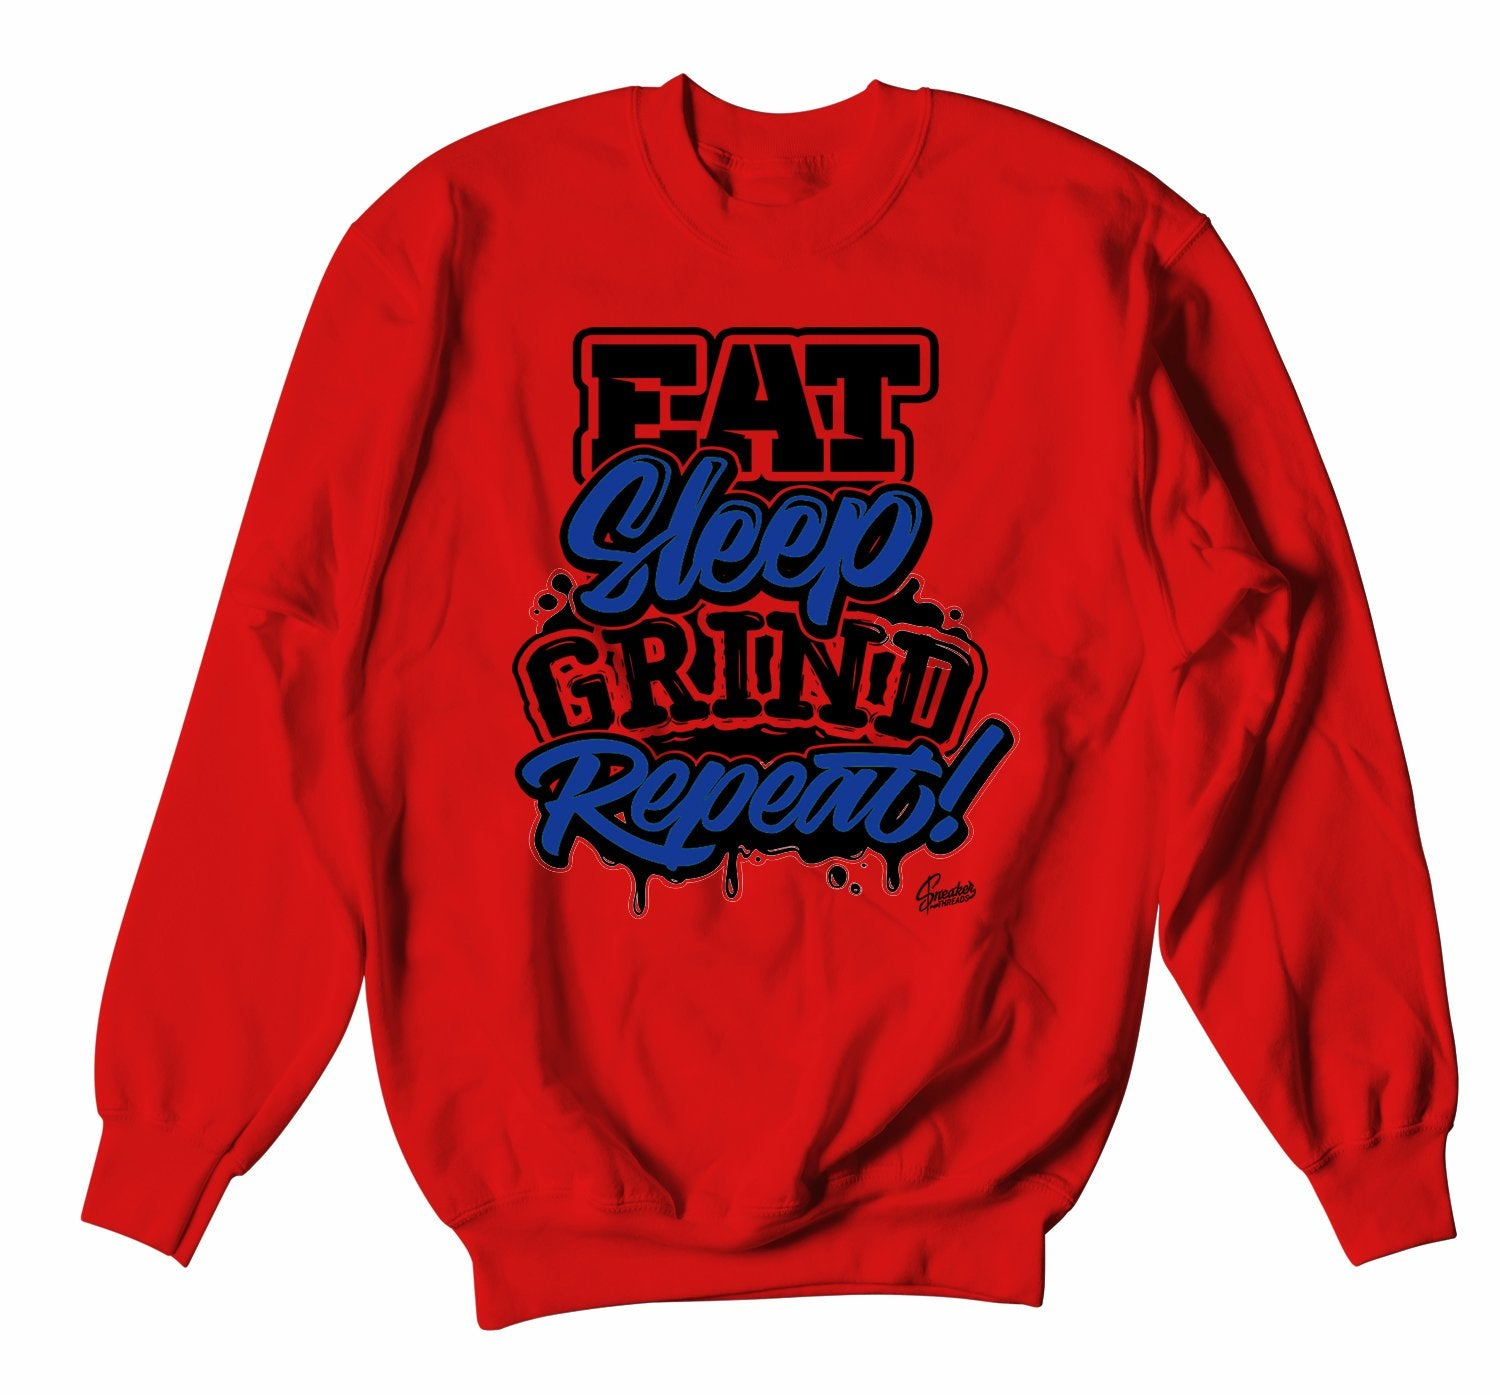 Red crewnecks designed to match the Jordan 4 loyal blue sneakers